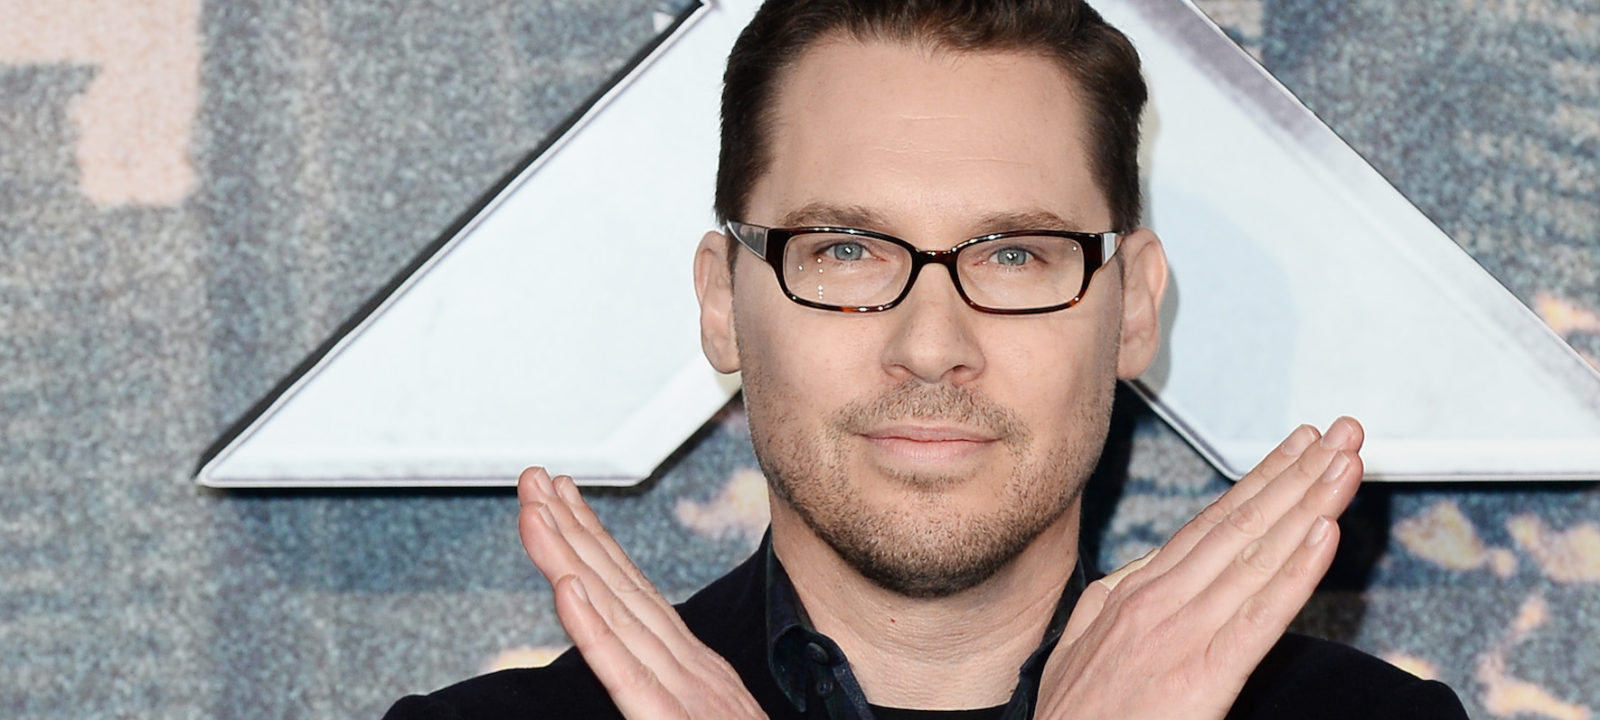 """Bryan Singer attends a Global Fan Screening of """"X-Men Apocalypse"""" at BFI IMAX on May 9, 2016 in London, England."""